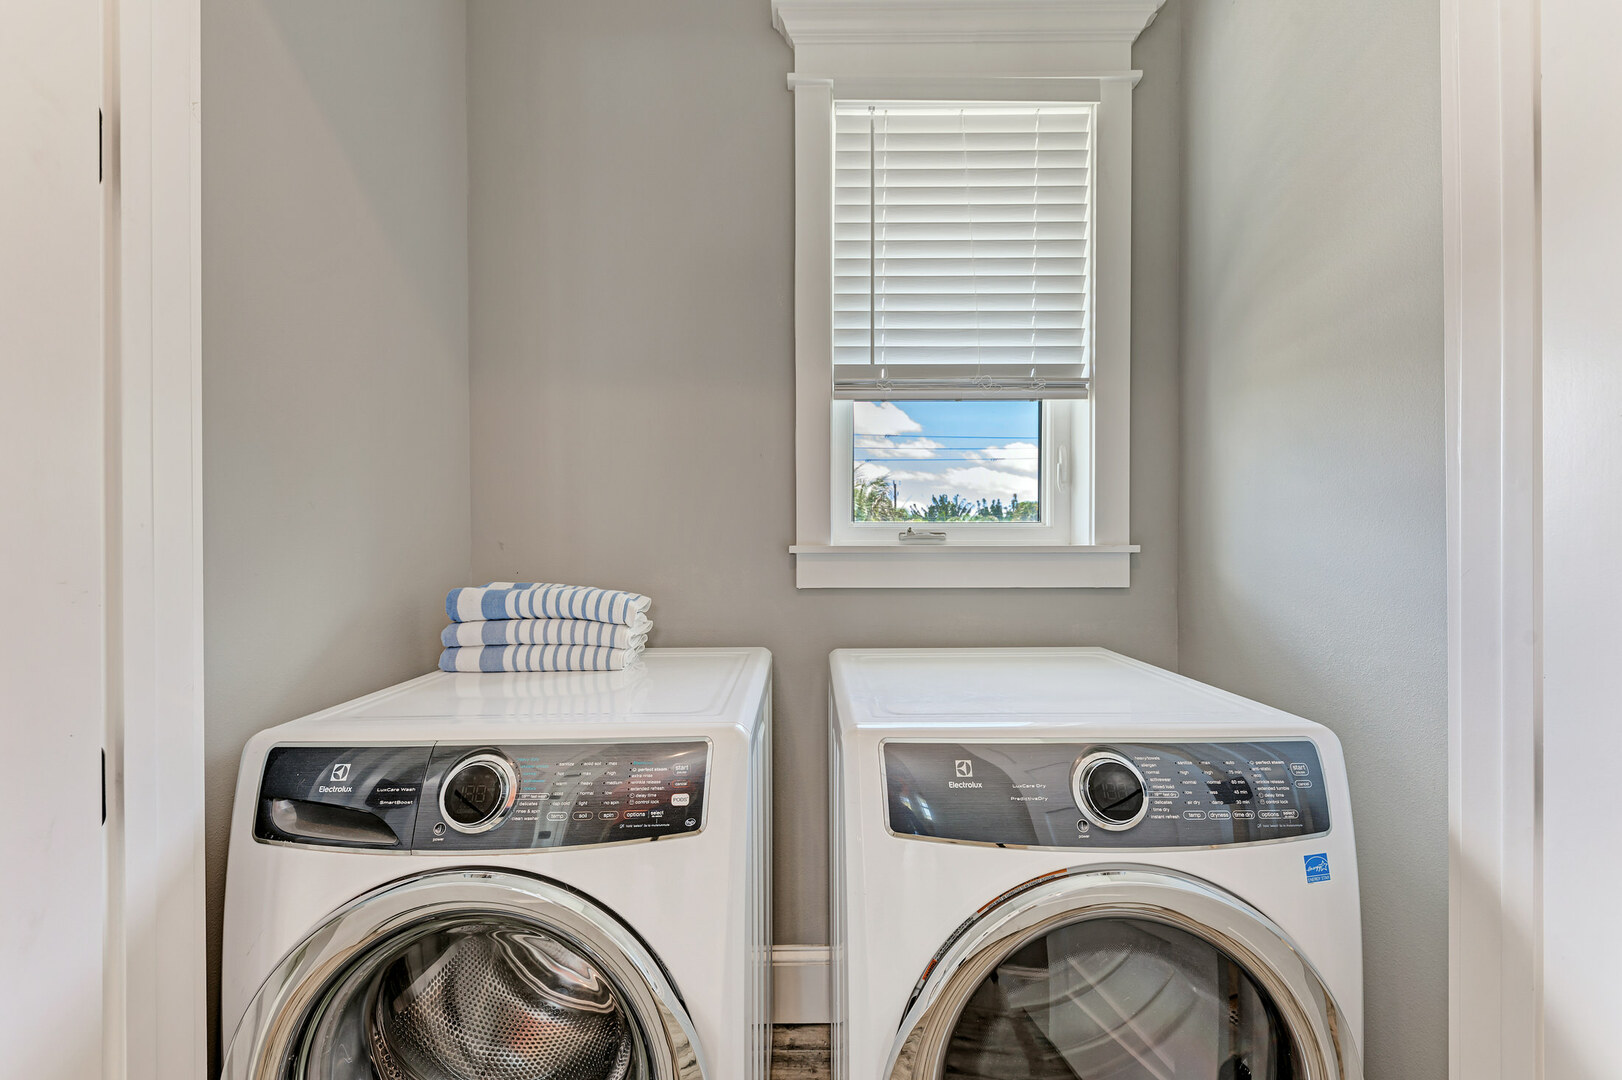 4 Sandpipers laundry